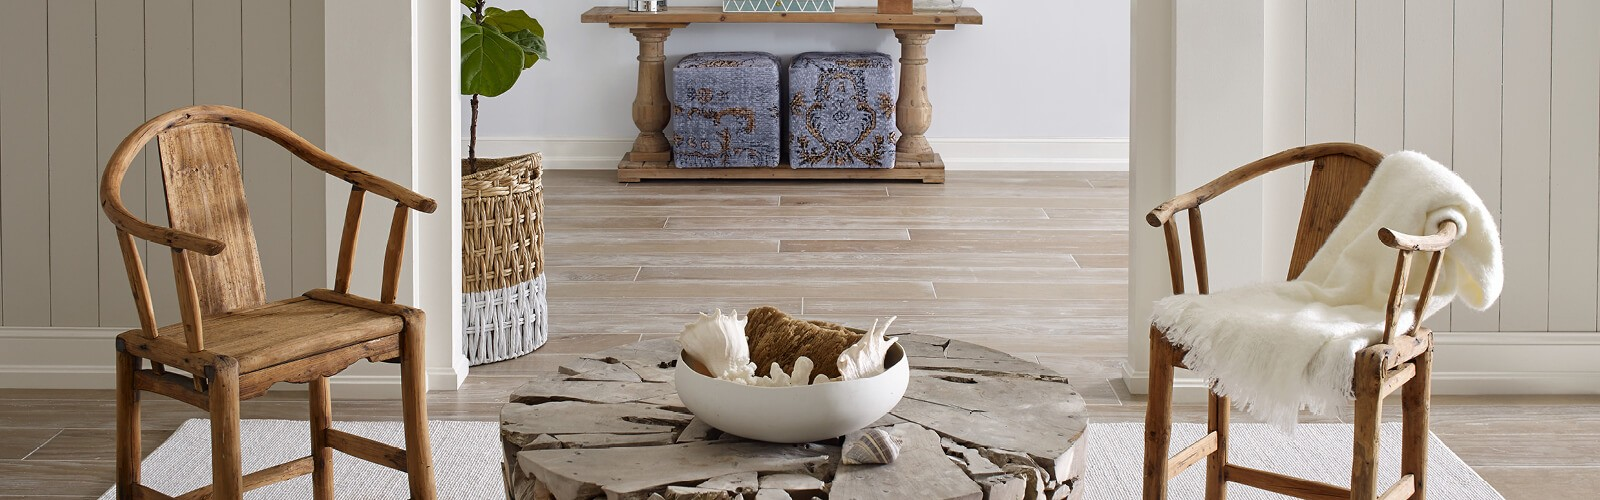 Laminate well-suited for homes with pets | West Michigan Carpet Center